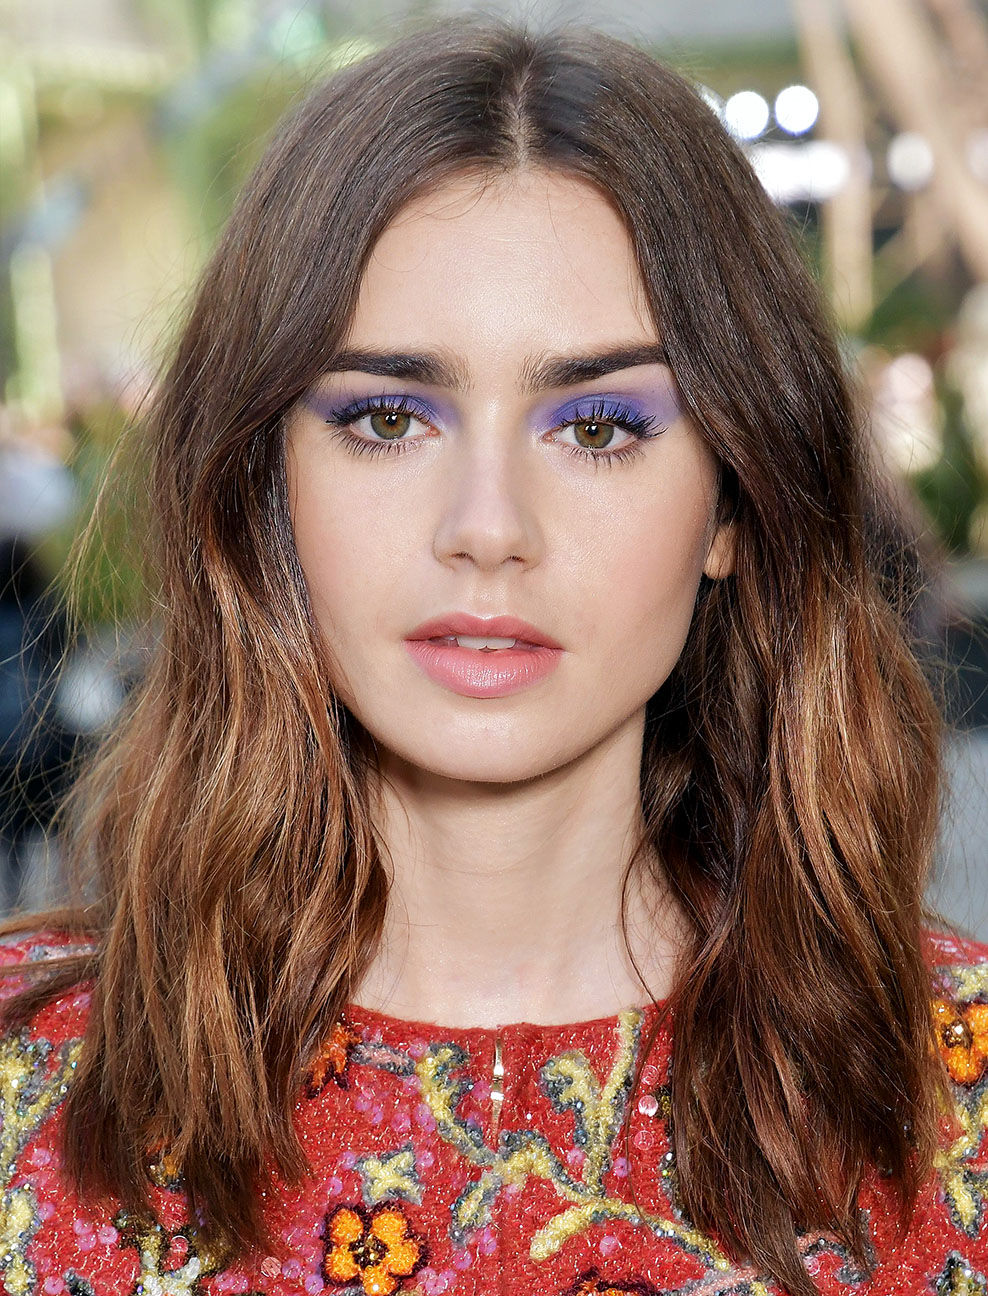 eyes-how-to-do-your-makeup-for-wedding-guest-beauty-lilycollins-purple-eyeshadow.jpg